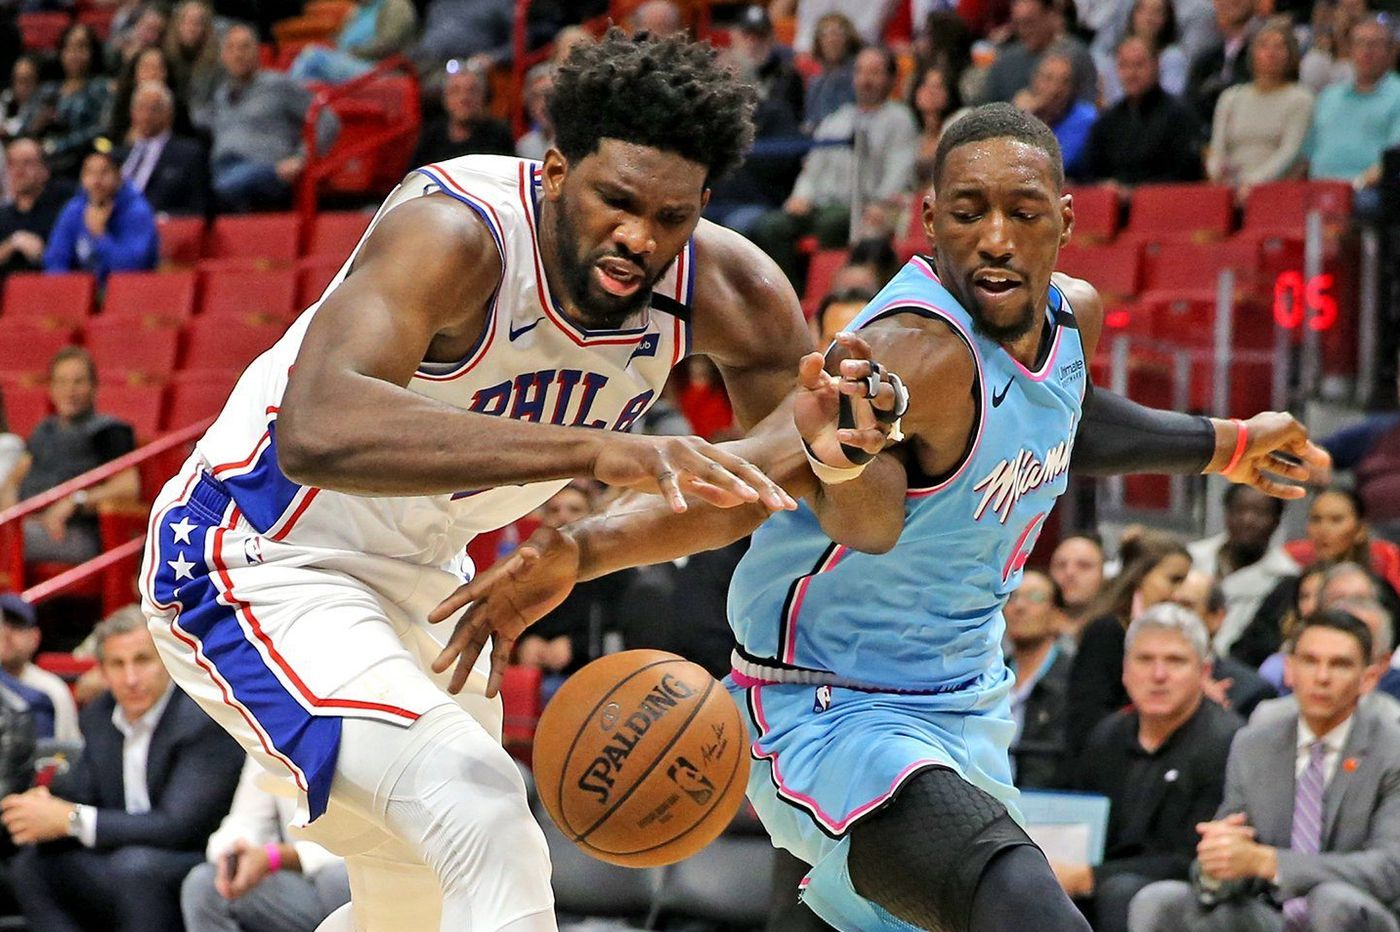 The Sixers' Joel Embiid knows he needs to be better after a historically bad performance. But will his hand allow it? | David Murphy